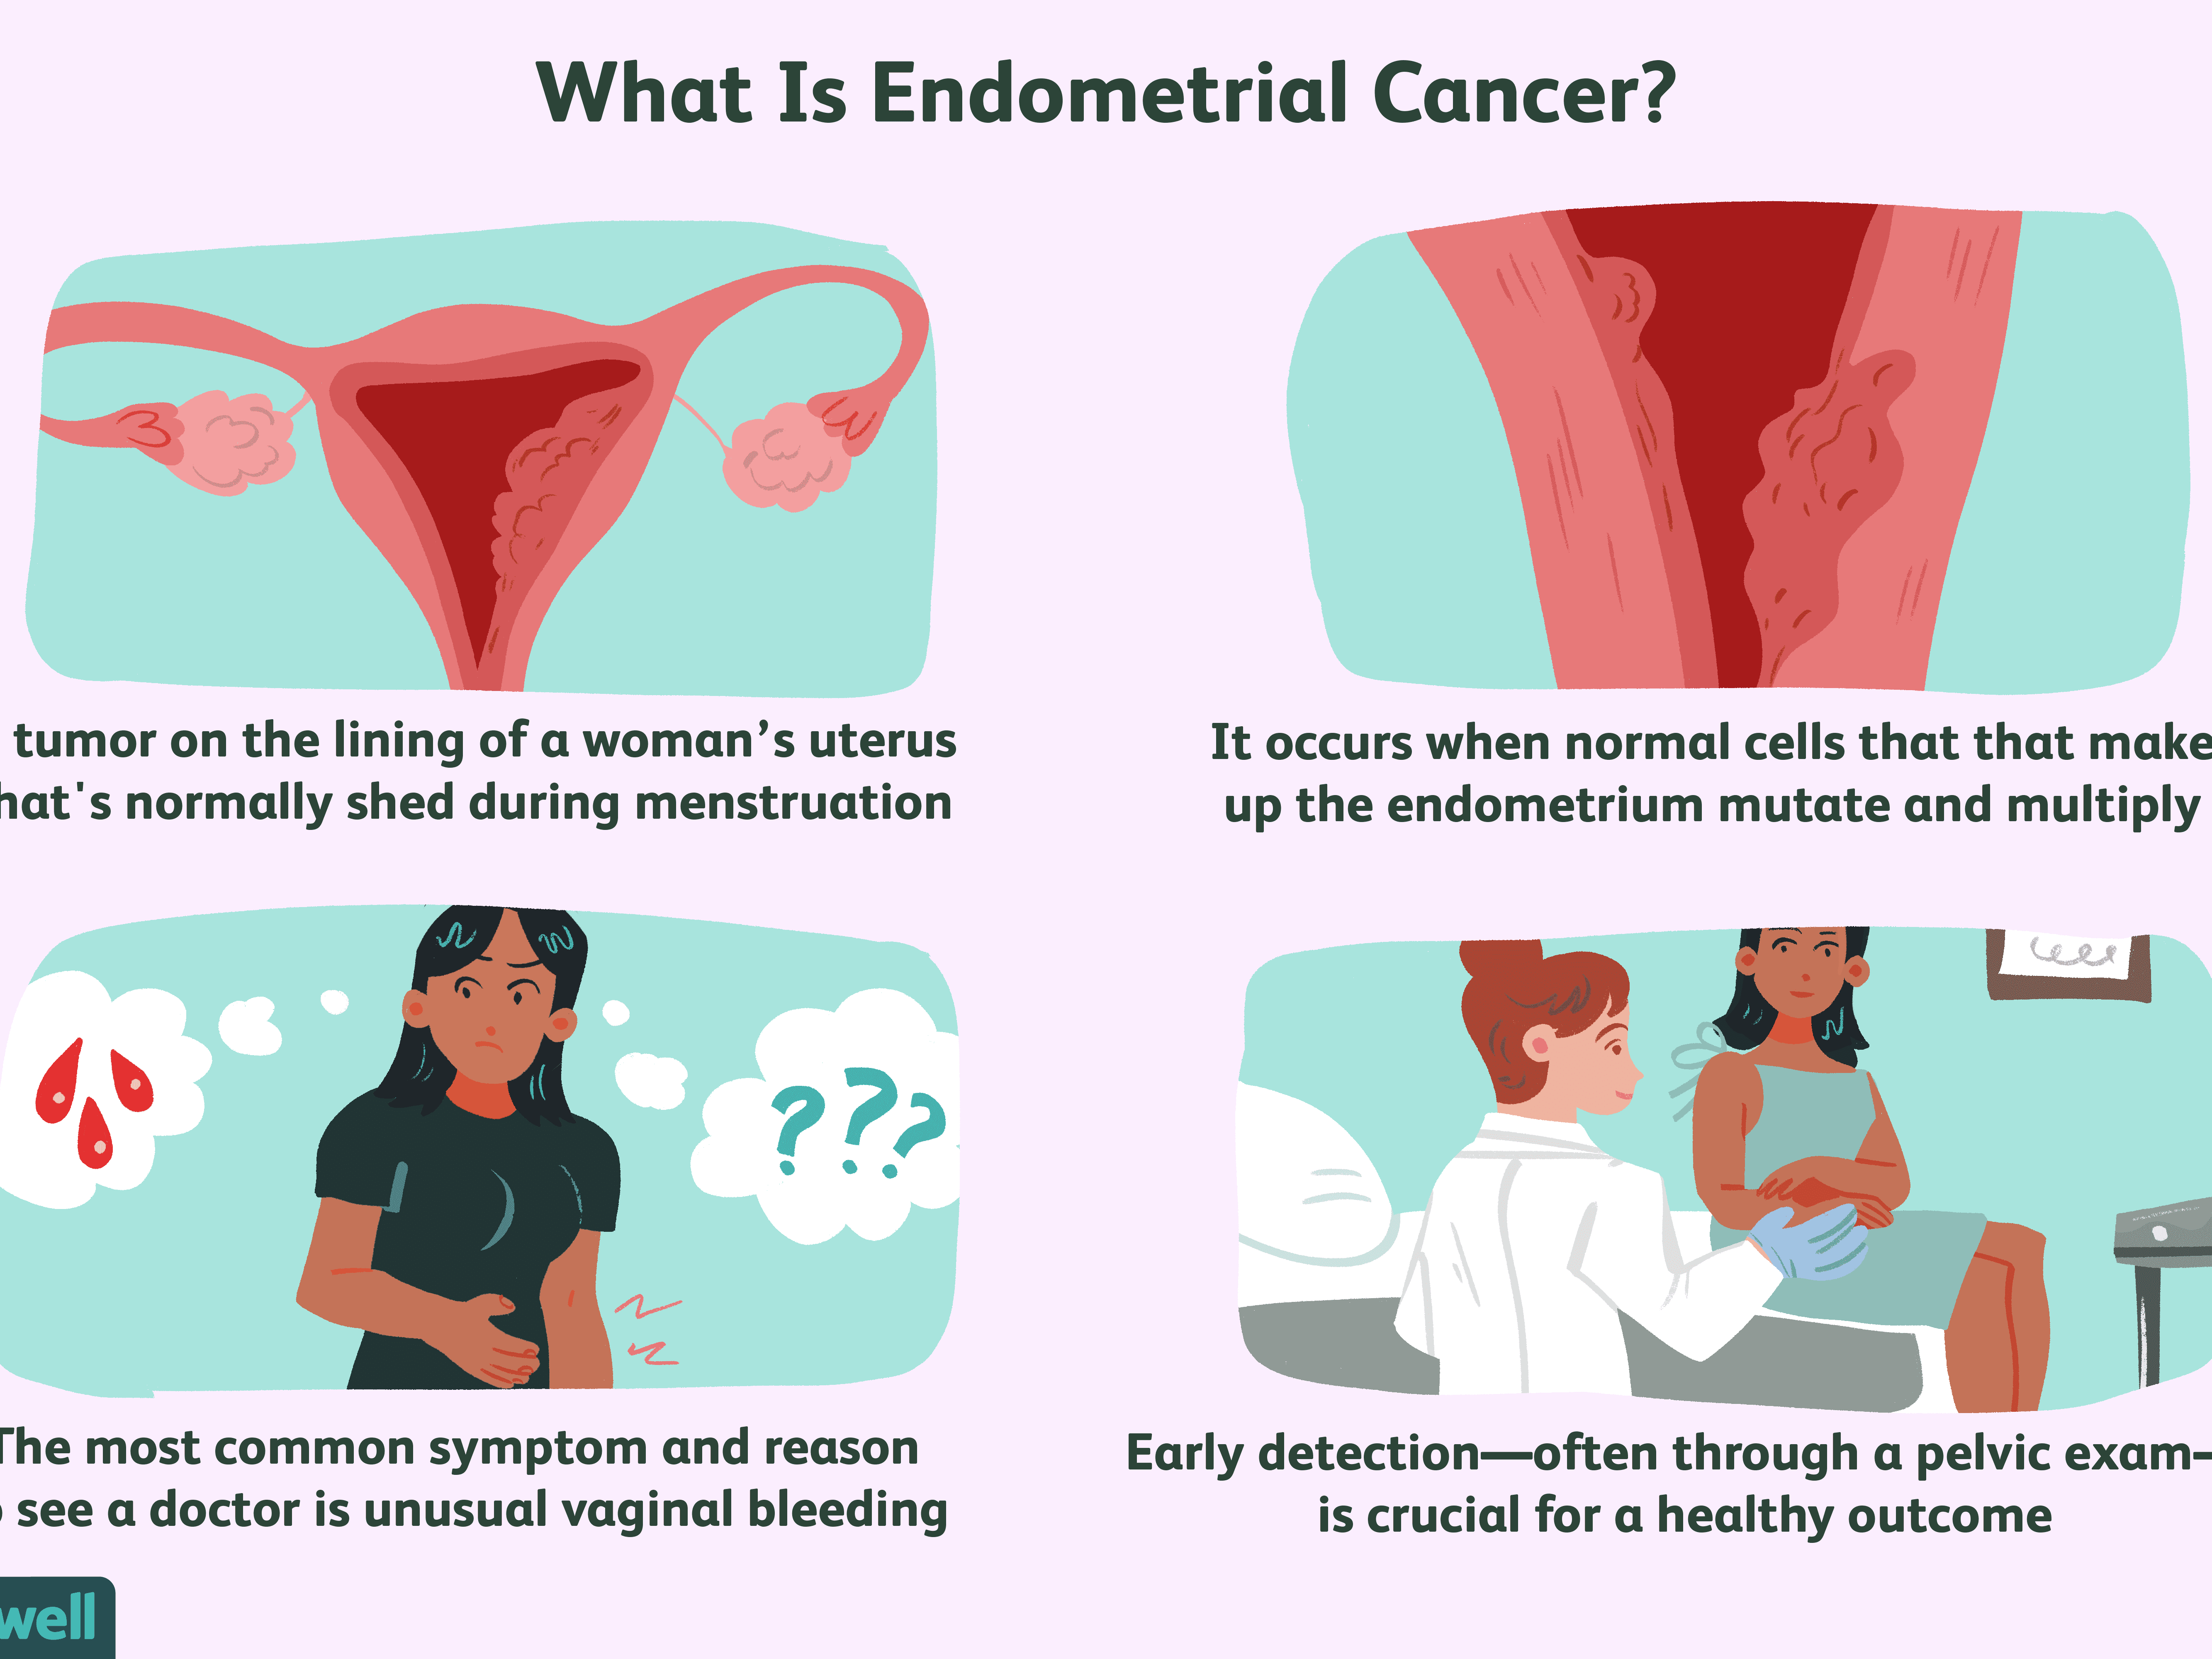 Endometrial Cancer Overview And More